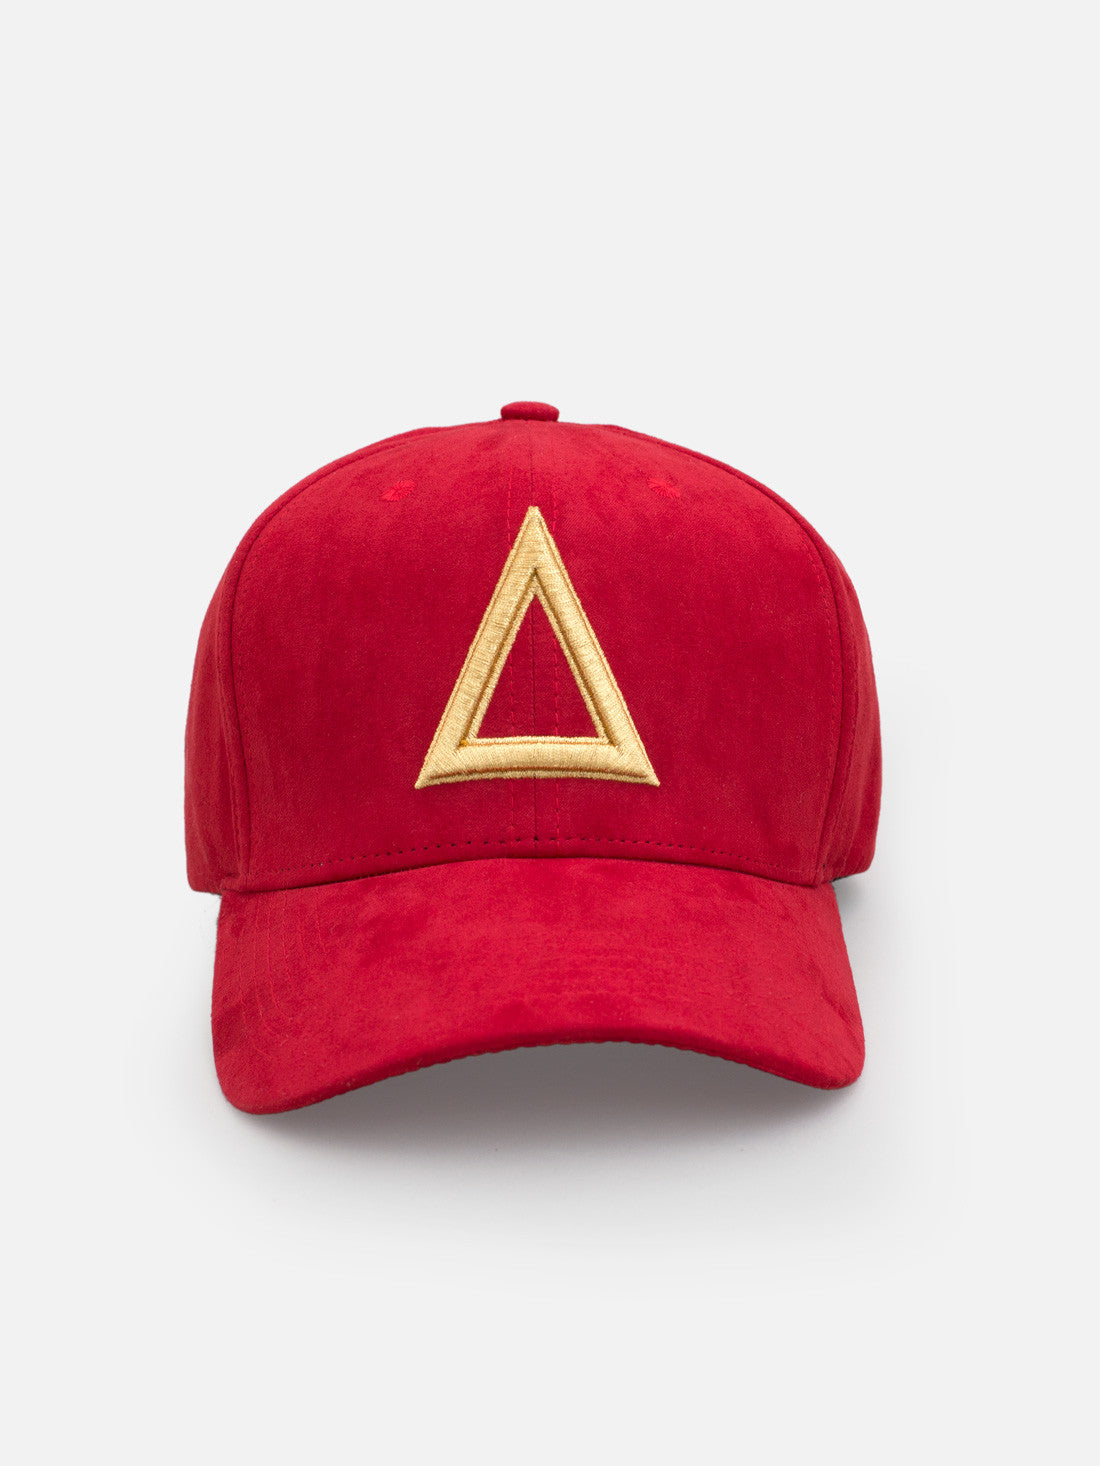 Suede Dad hat Red - Gold tri